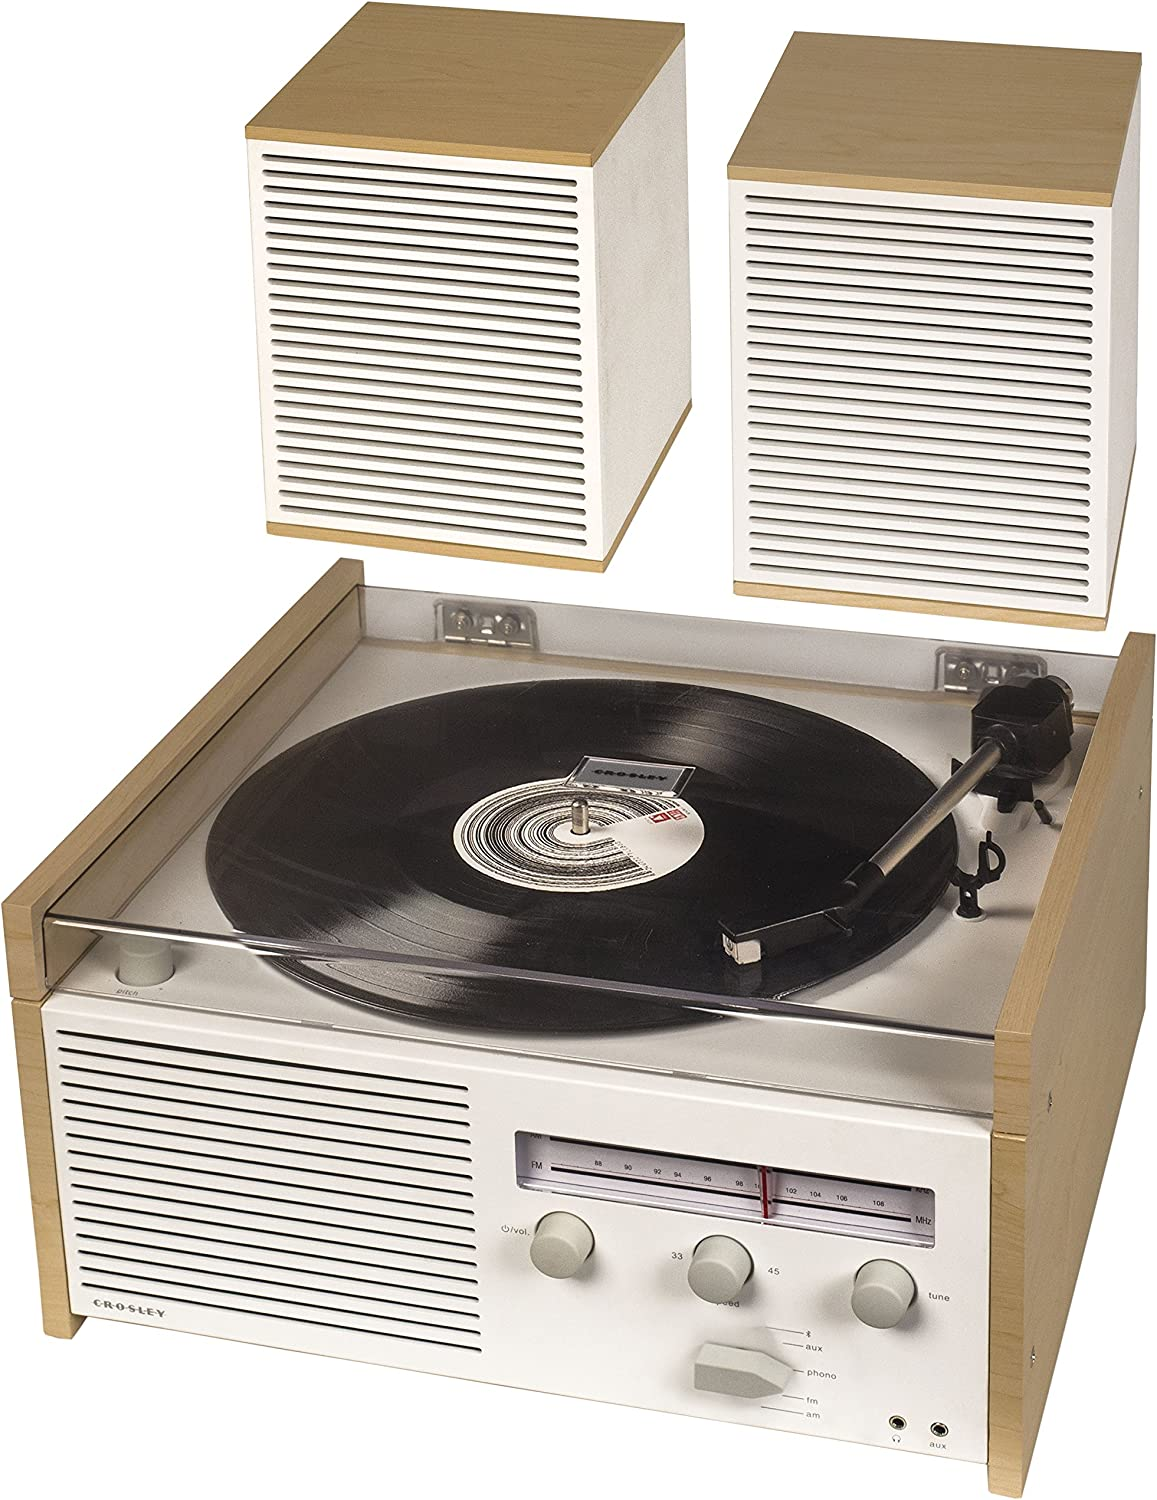 Crosley Switch II Belt Driven 2 Speed Turntable Record Player Shelf System